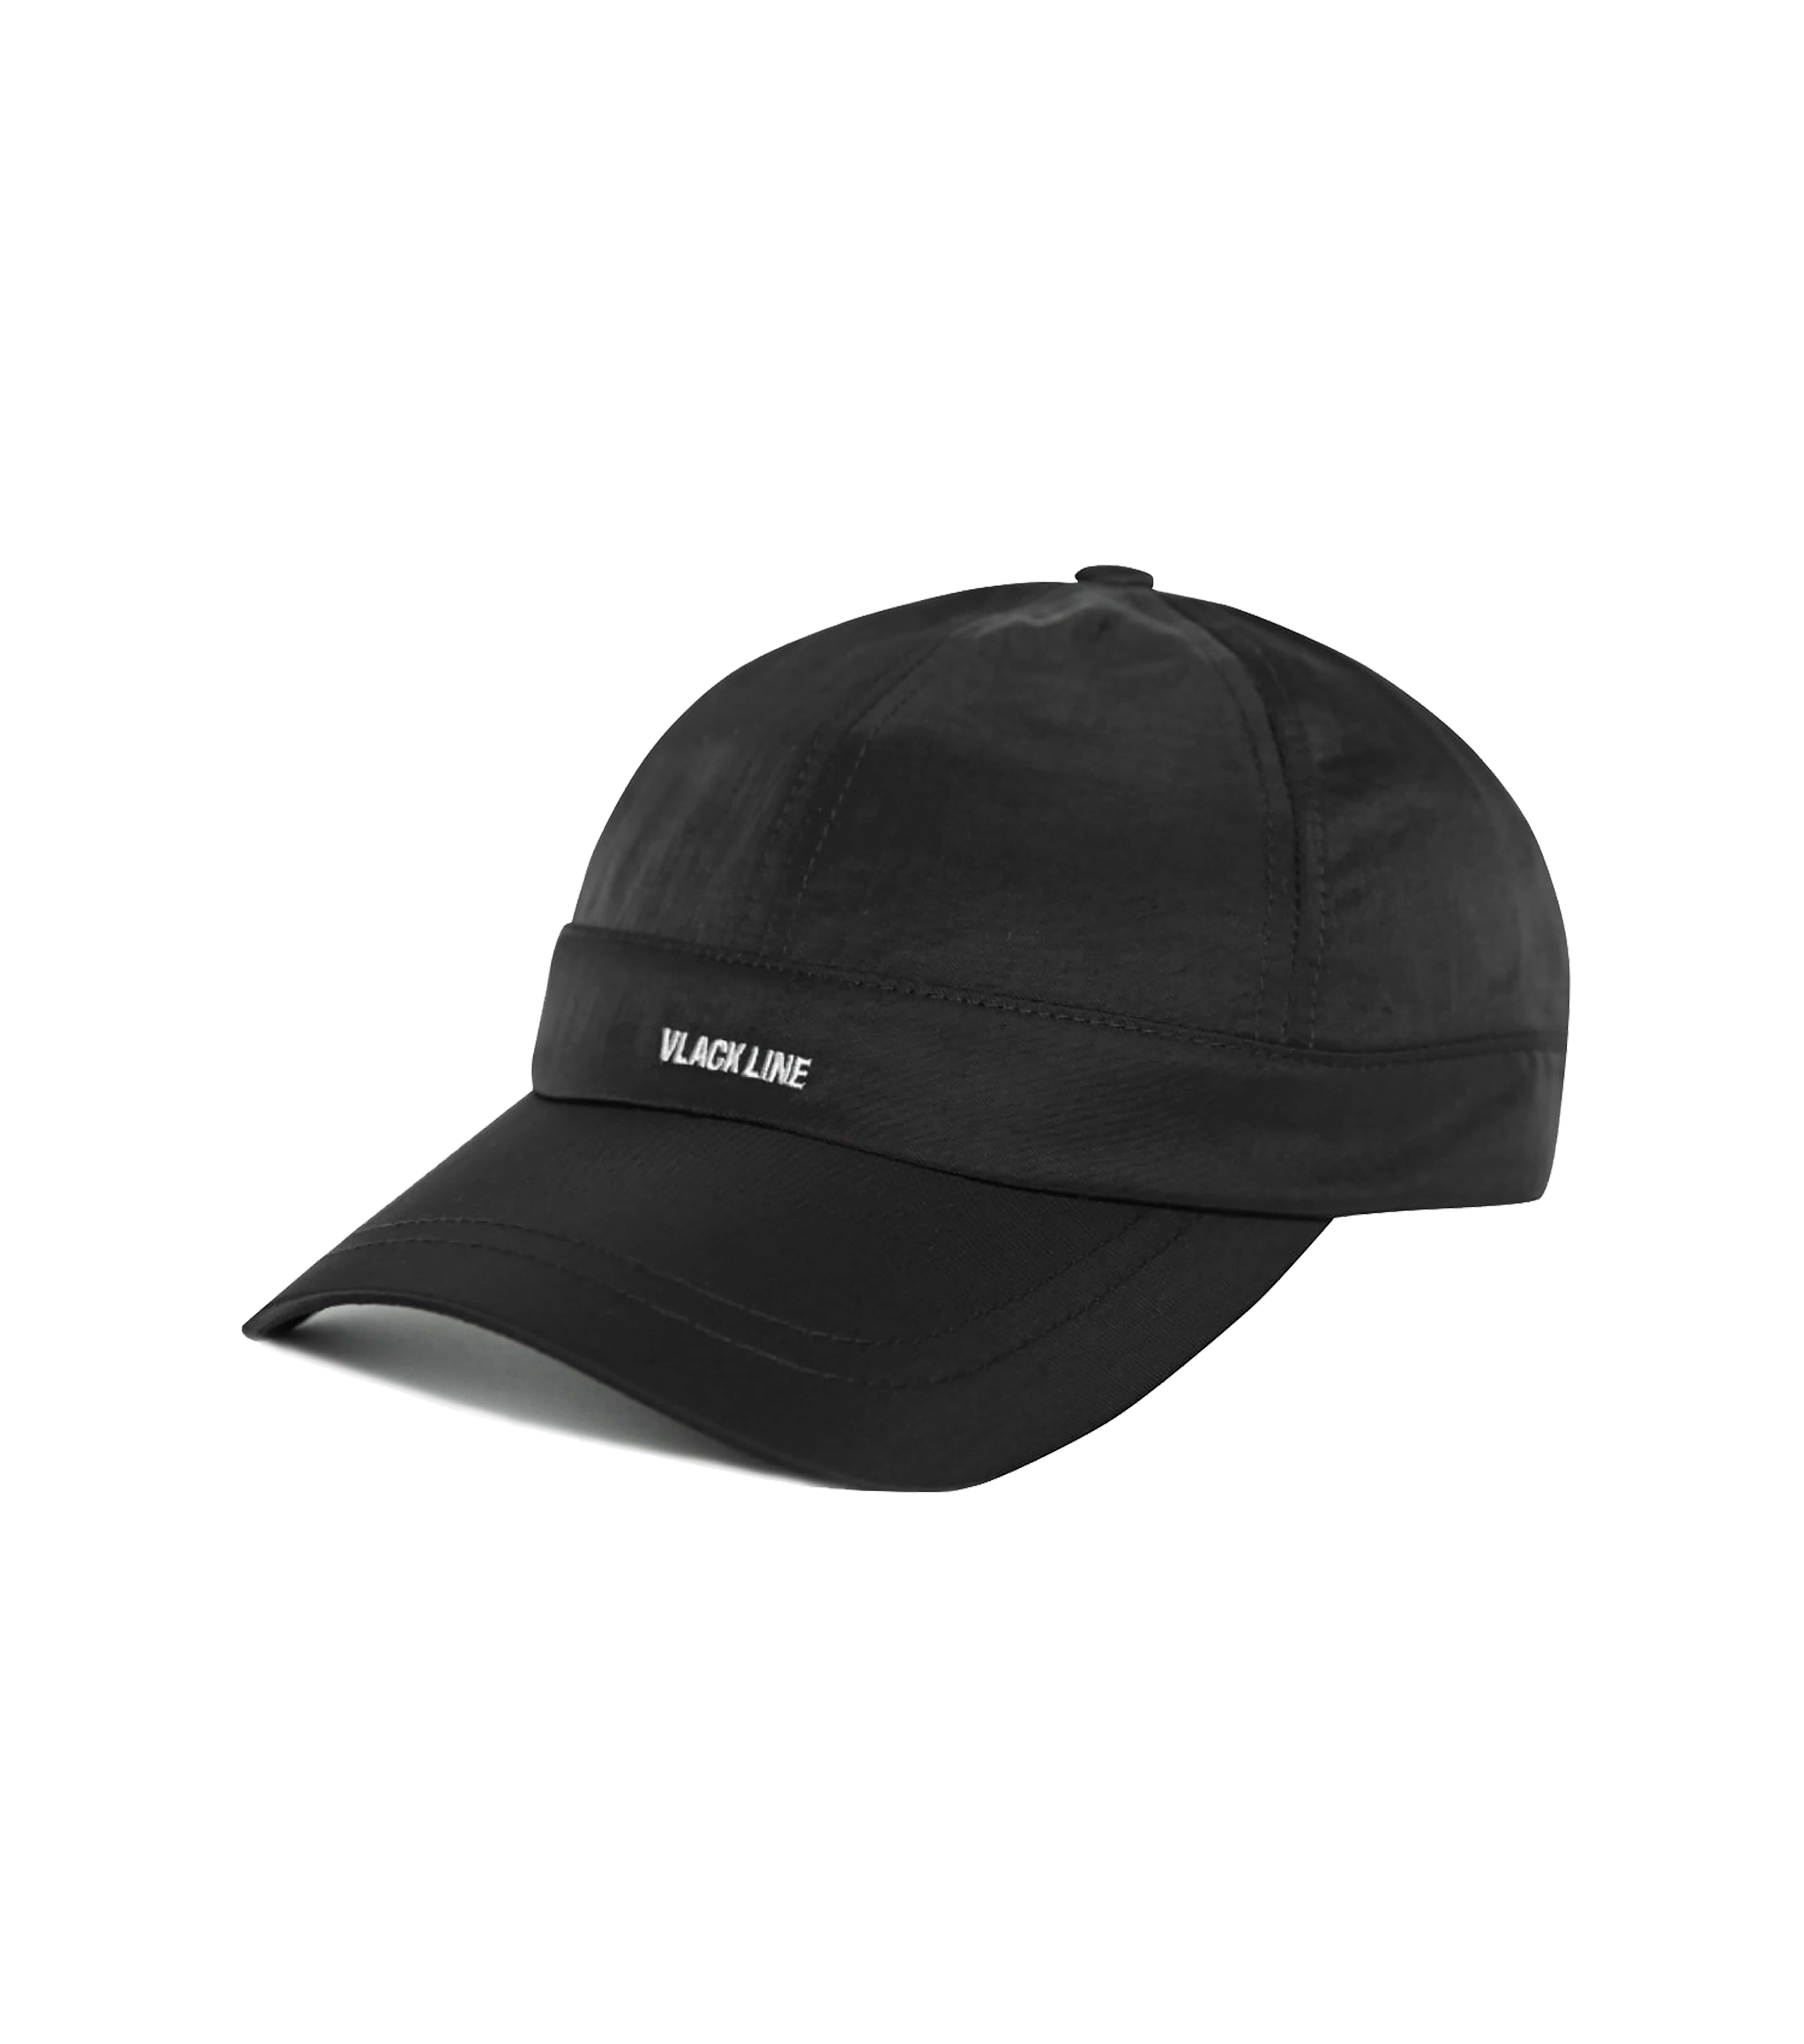 VLACK LINE - BASIC LOGO BALL CAP (BLACK)